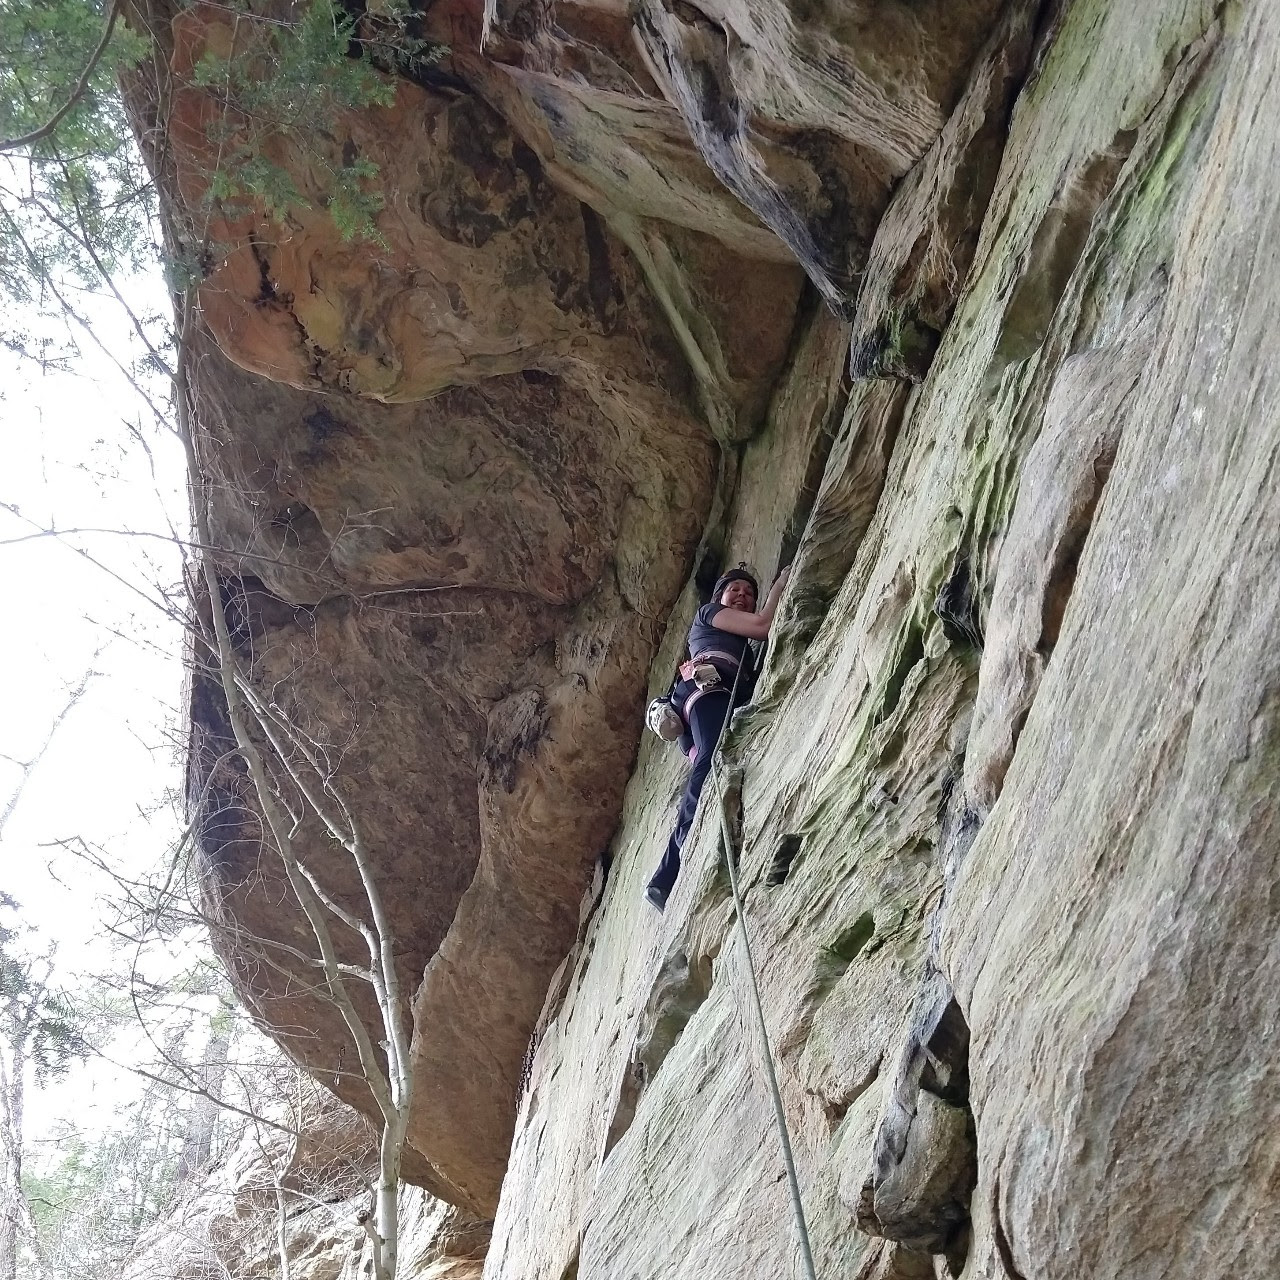 Sally at Red River Gorge